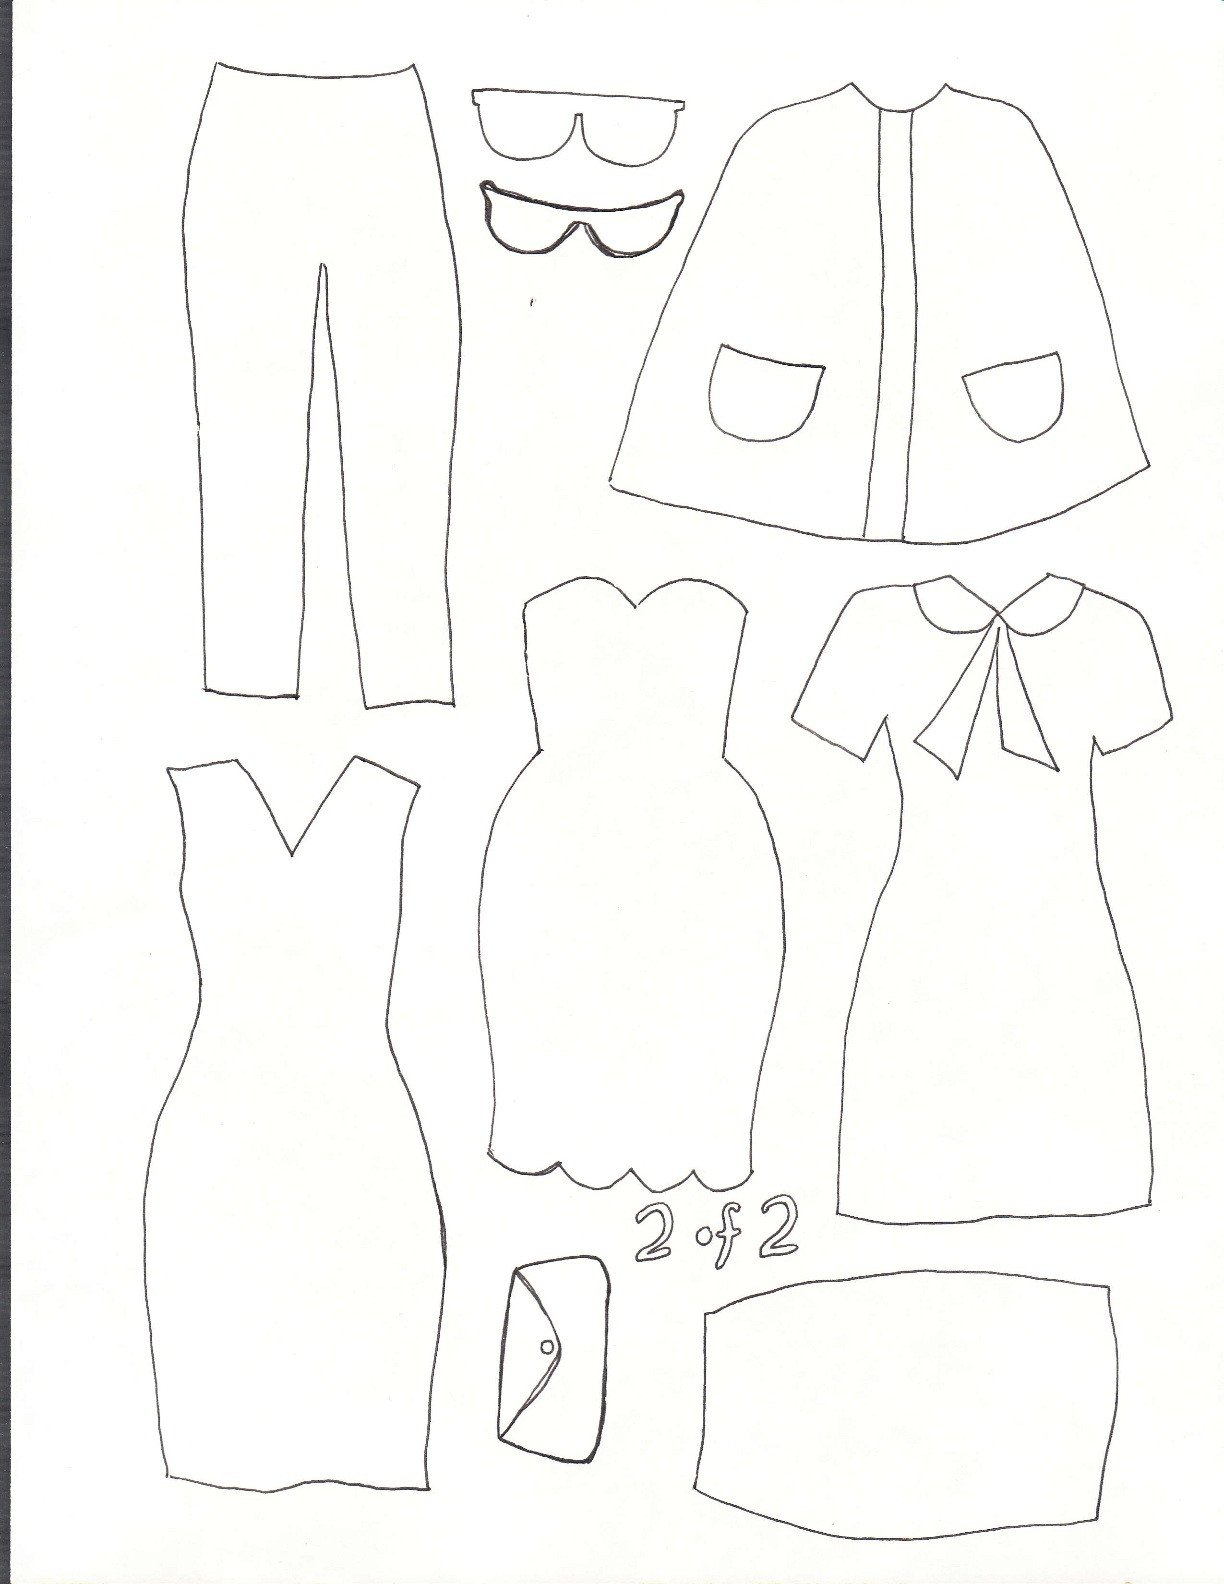 Paper Doll Clothes Template Smile and Wave Dress Up Felt Board Tutorial and Template